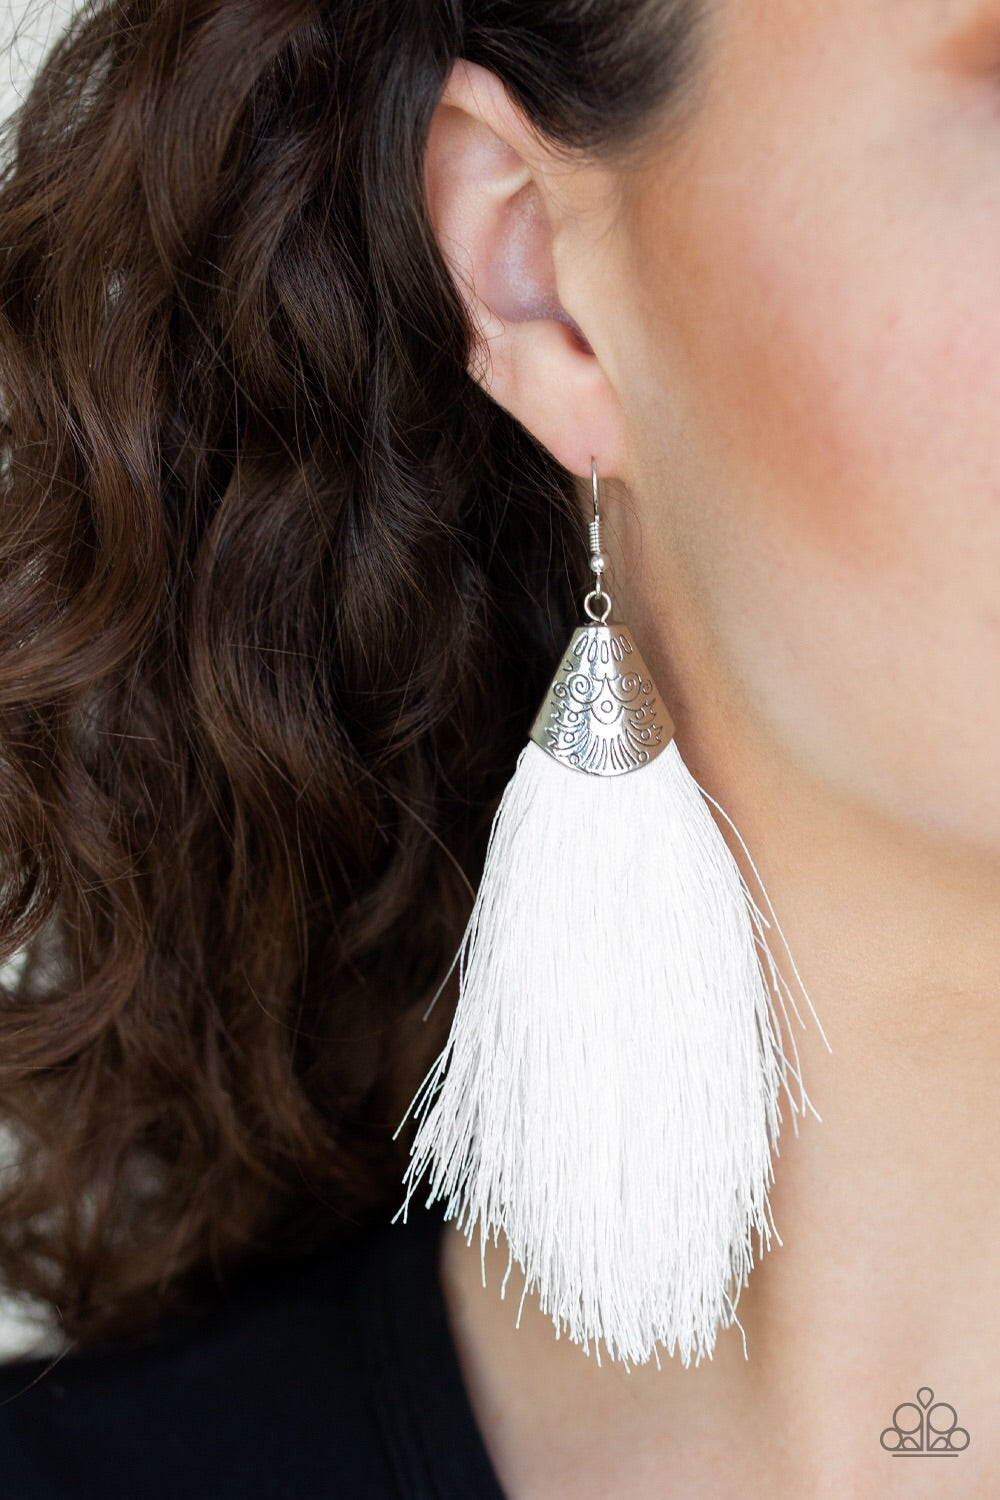 Paparazzi Jewelry Earrings Tassel Temptress - White